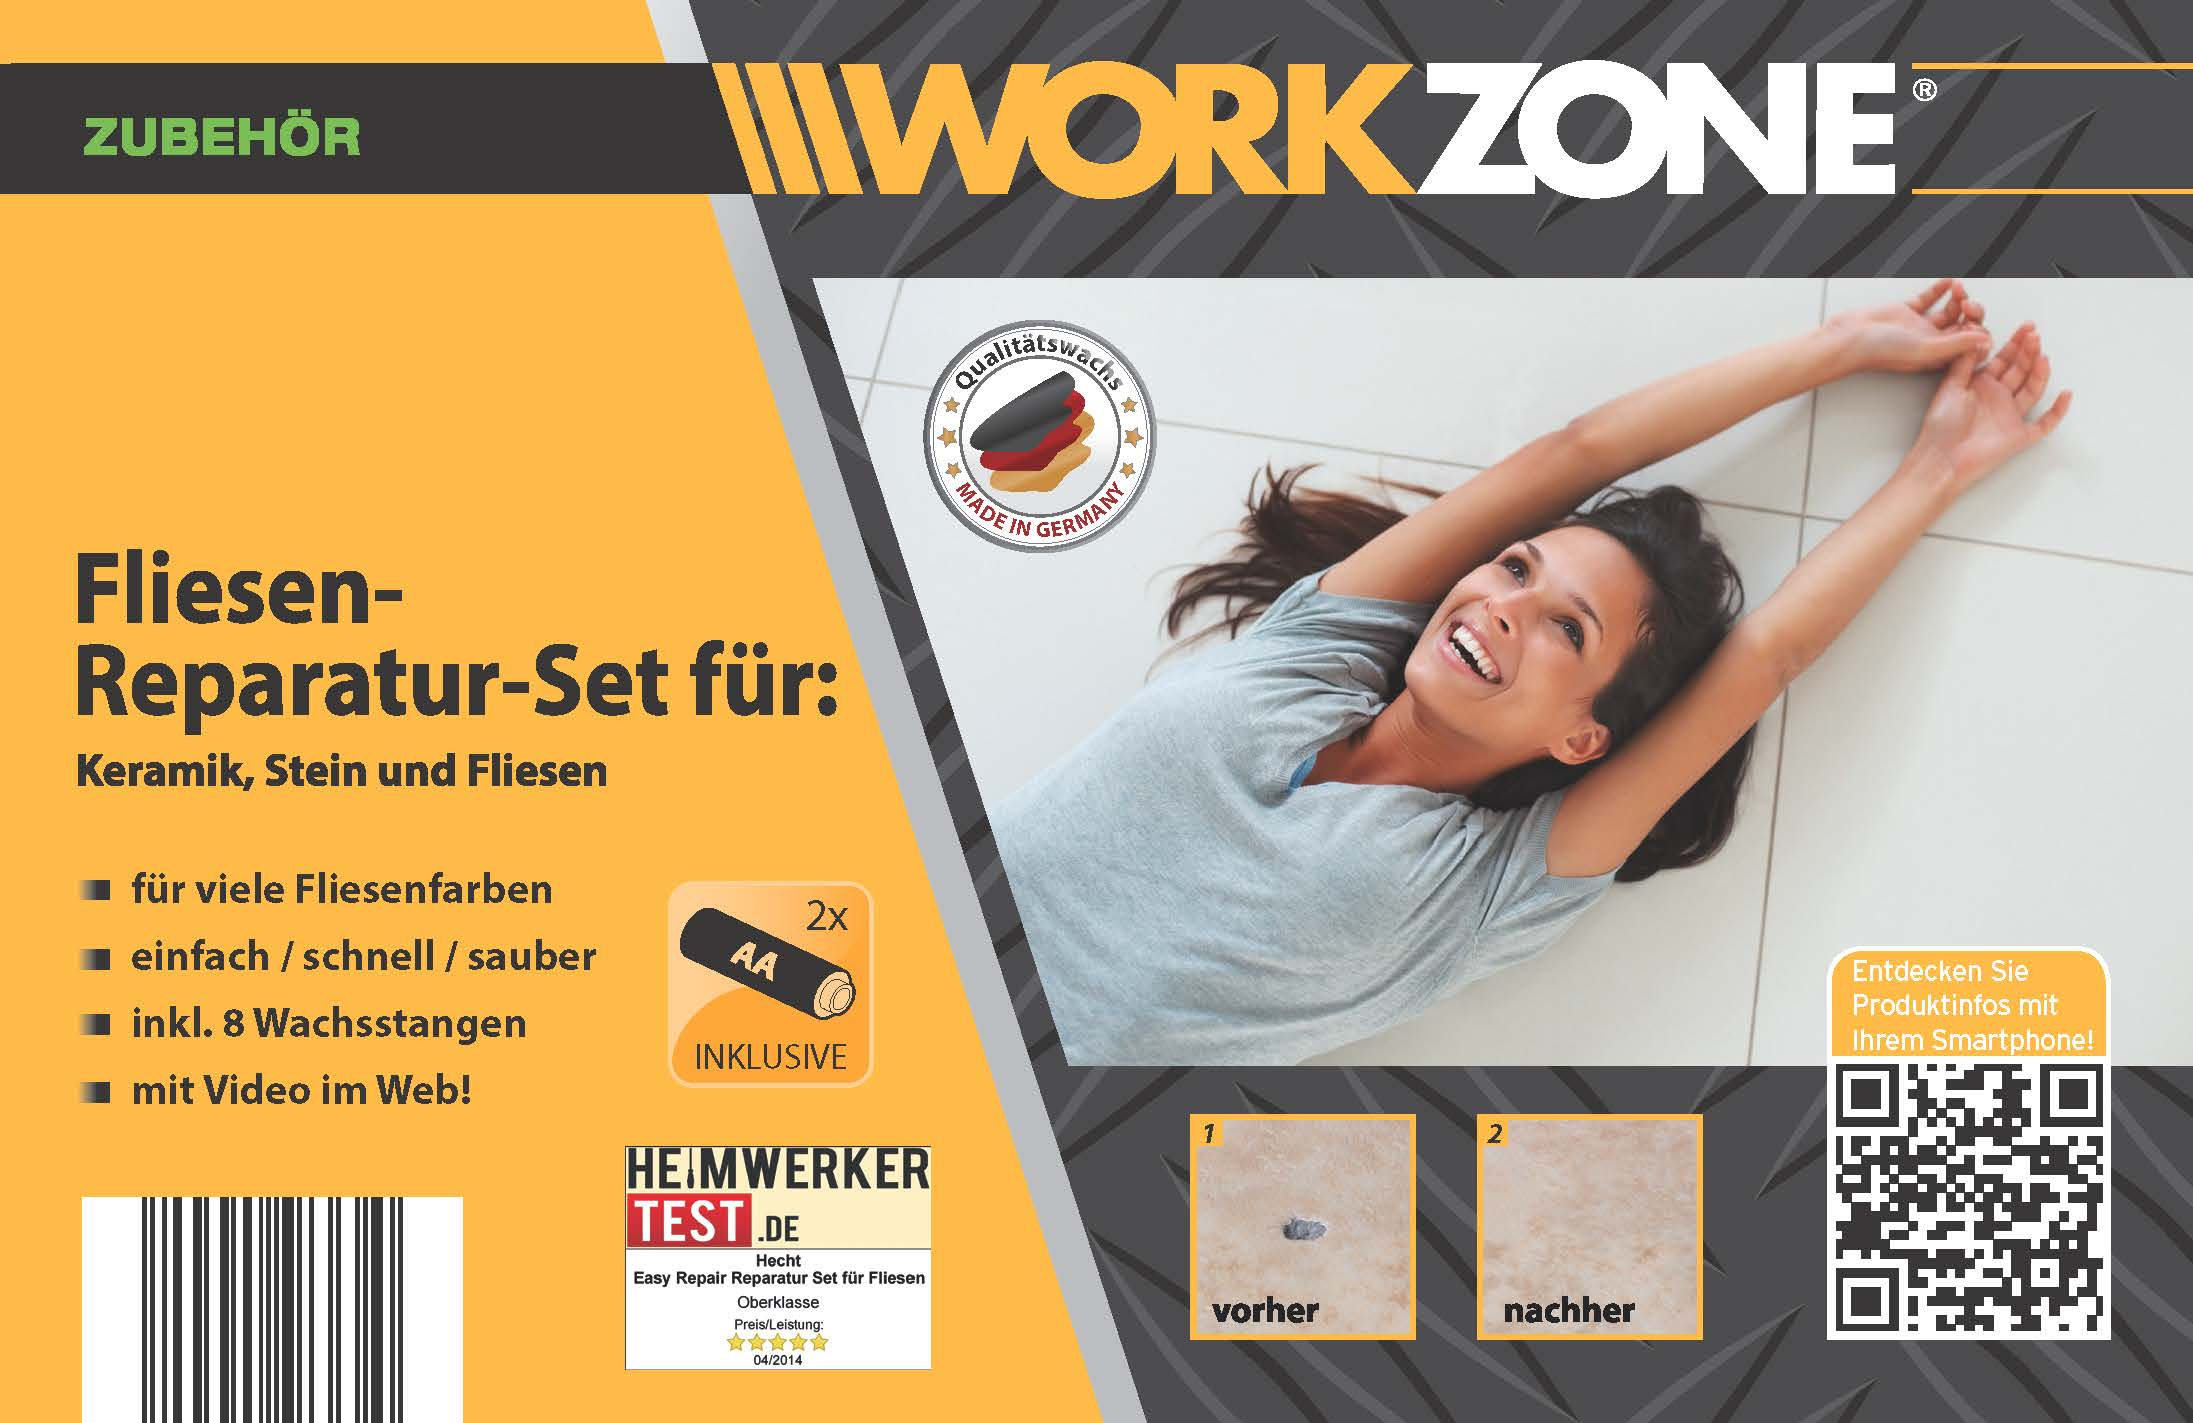 aldi workzone reparaturset f r keramik stein fliesen uvm sets handwerkszeuge. Black Bedroom Furniture Sets. Home Design Ideas